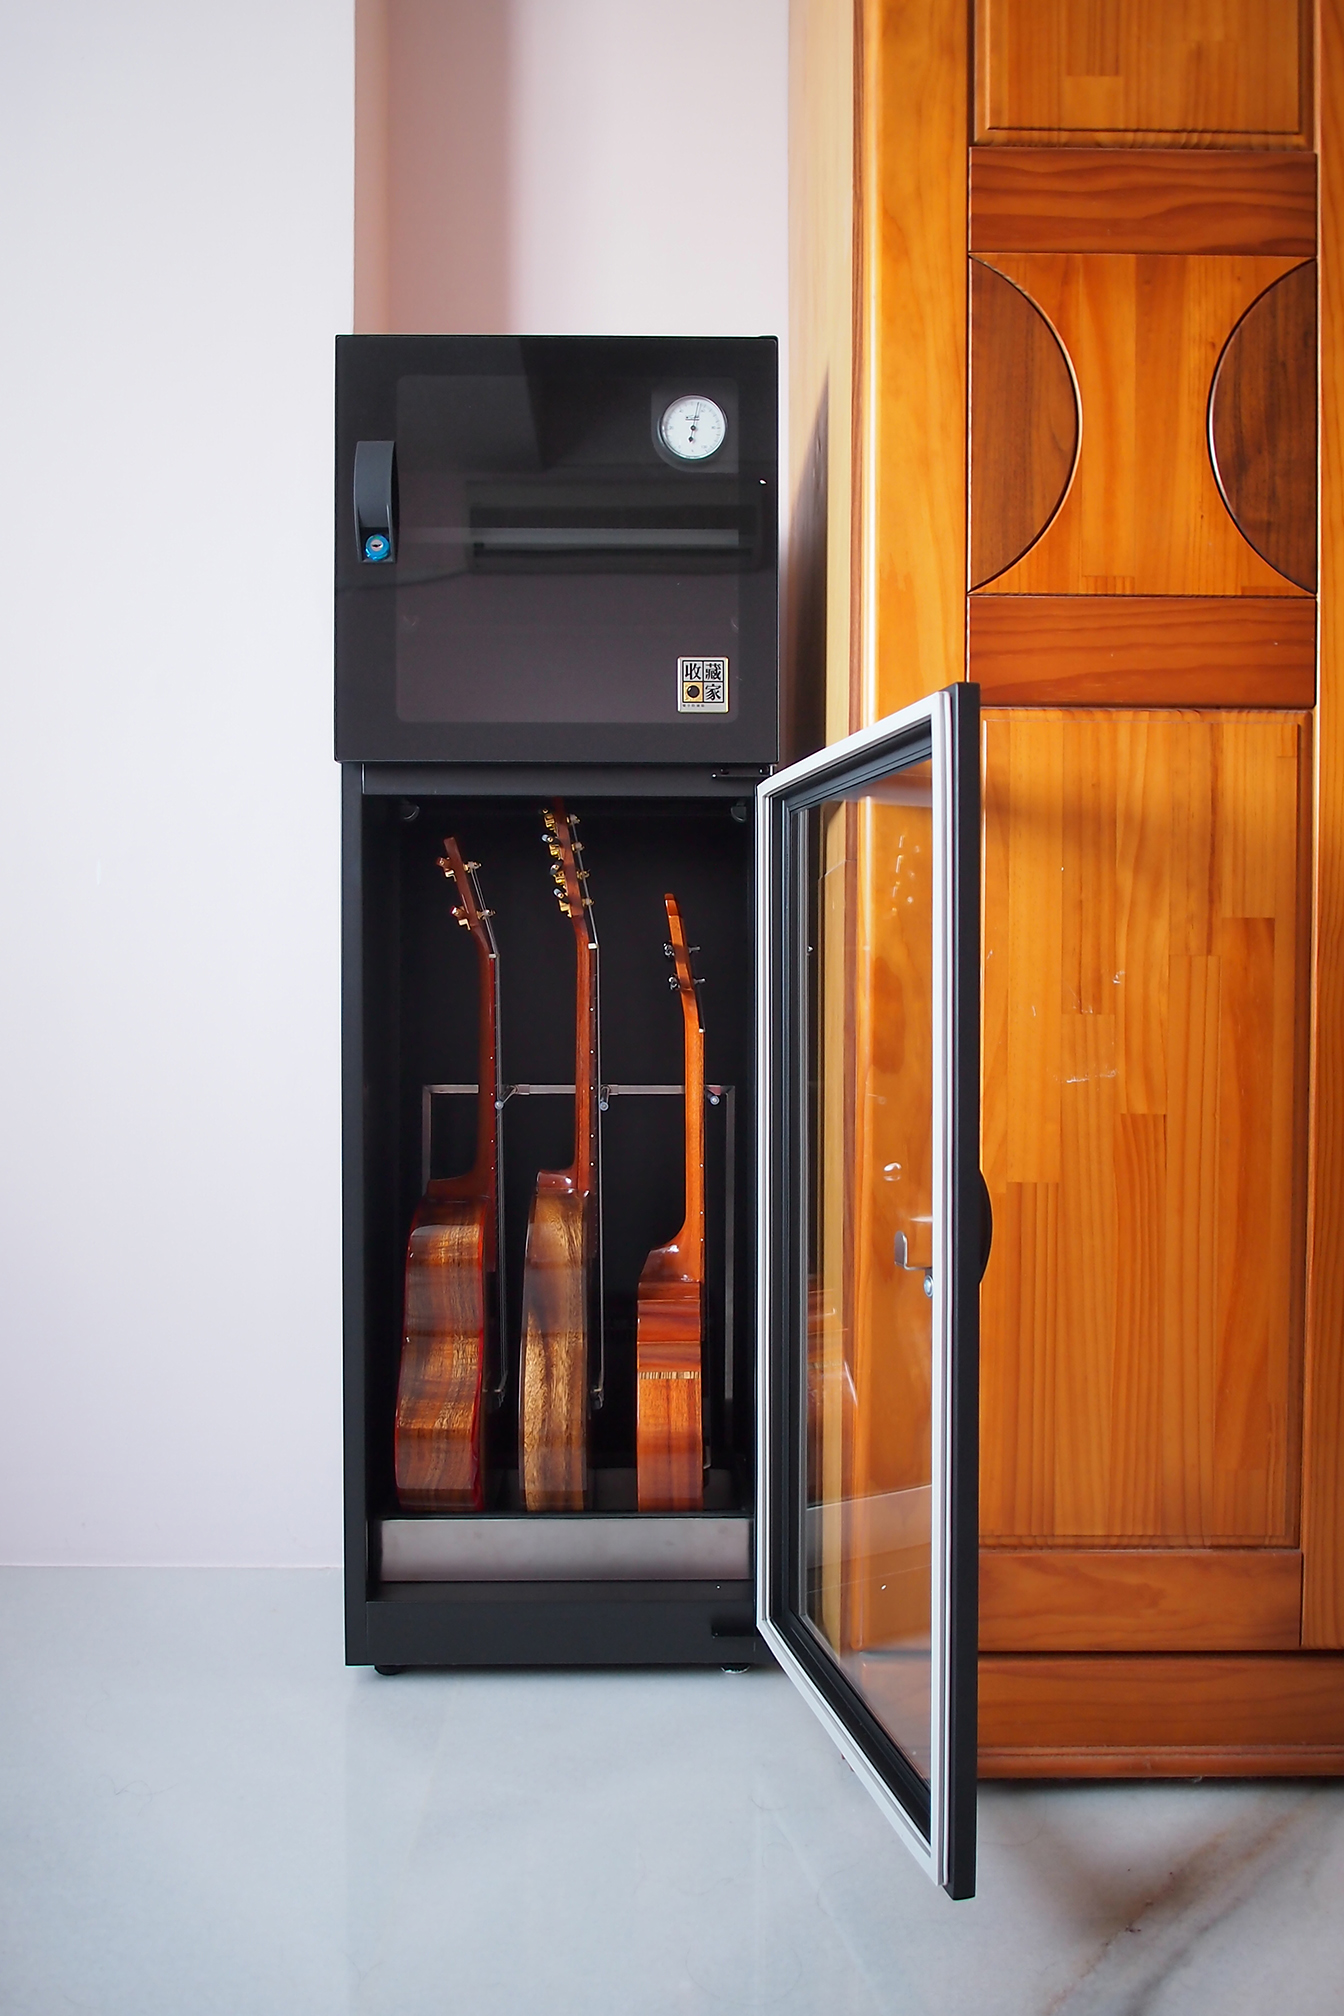 Guitars protected from humidity in Eureka Dry Tech's Auto Dry Box